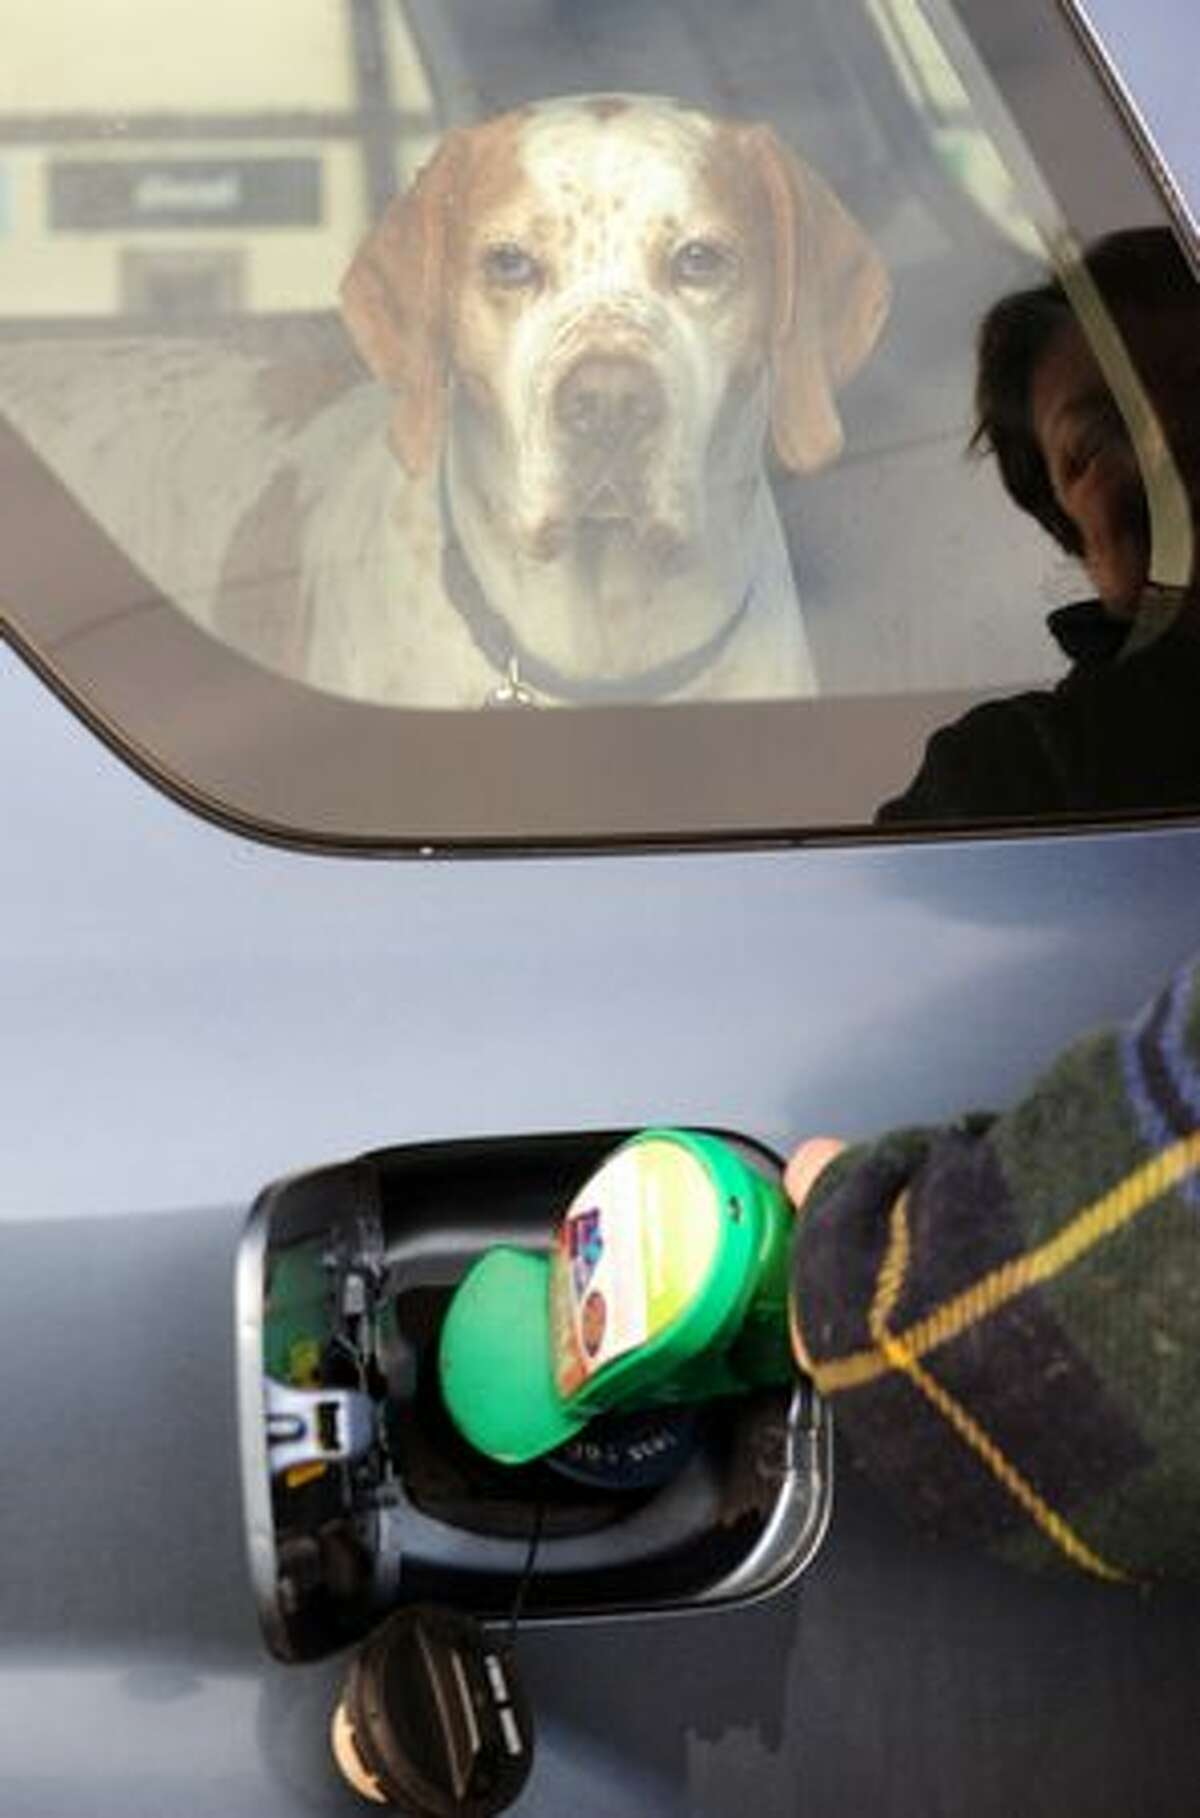 A dog looks from the rear window while the driver fills the car with fuel in Egham, England on January 2, 2011.